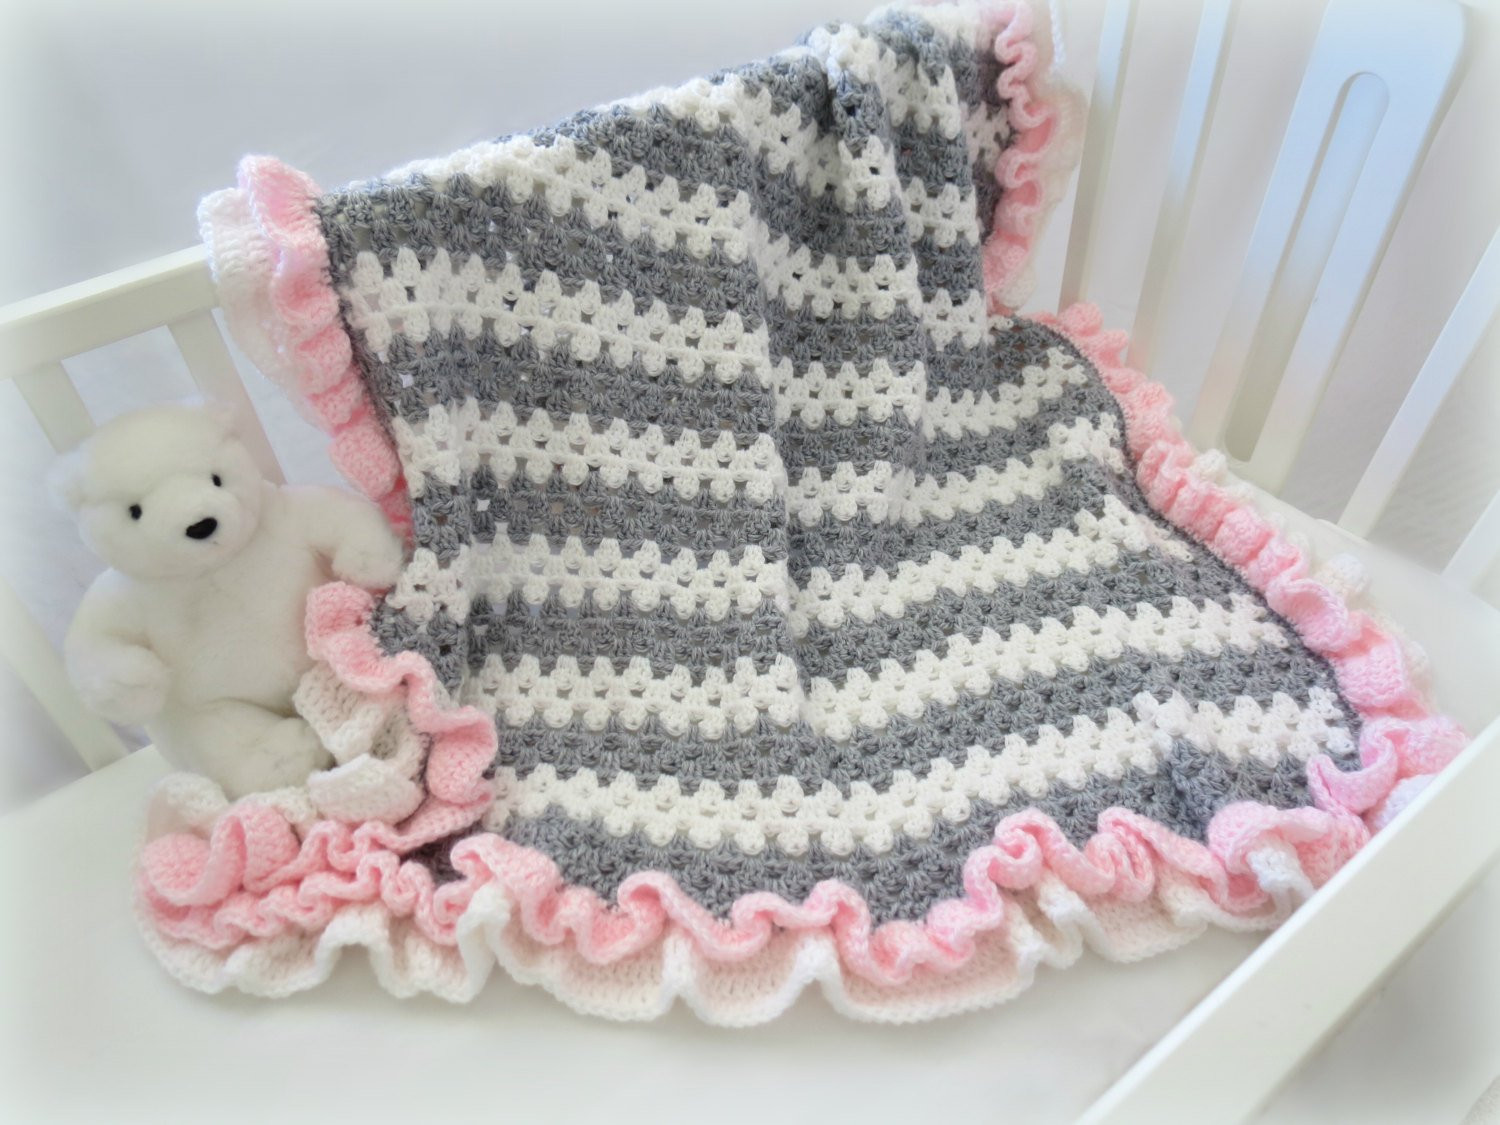 Crochet toddler Blanket Unique Crochet Baby Blanket Pattern Baby Crochet Blanket Afghan Of Amazing 41 Ideas Crochet toddler Blanket